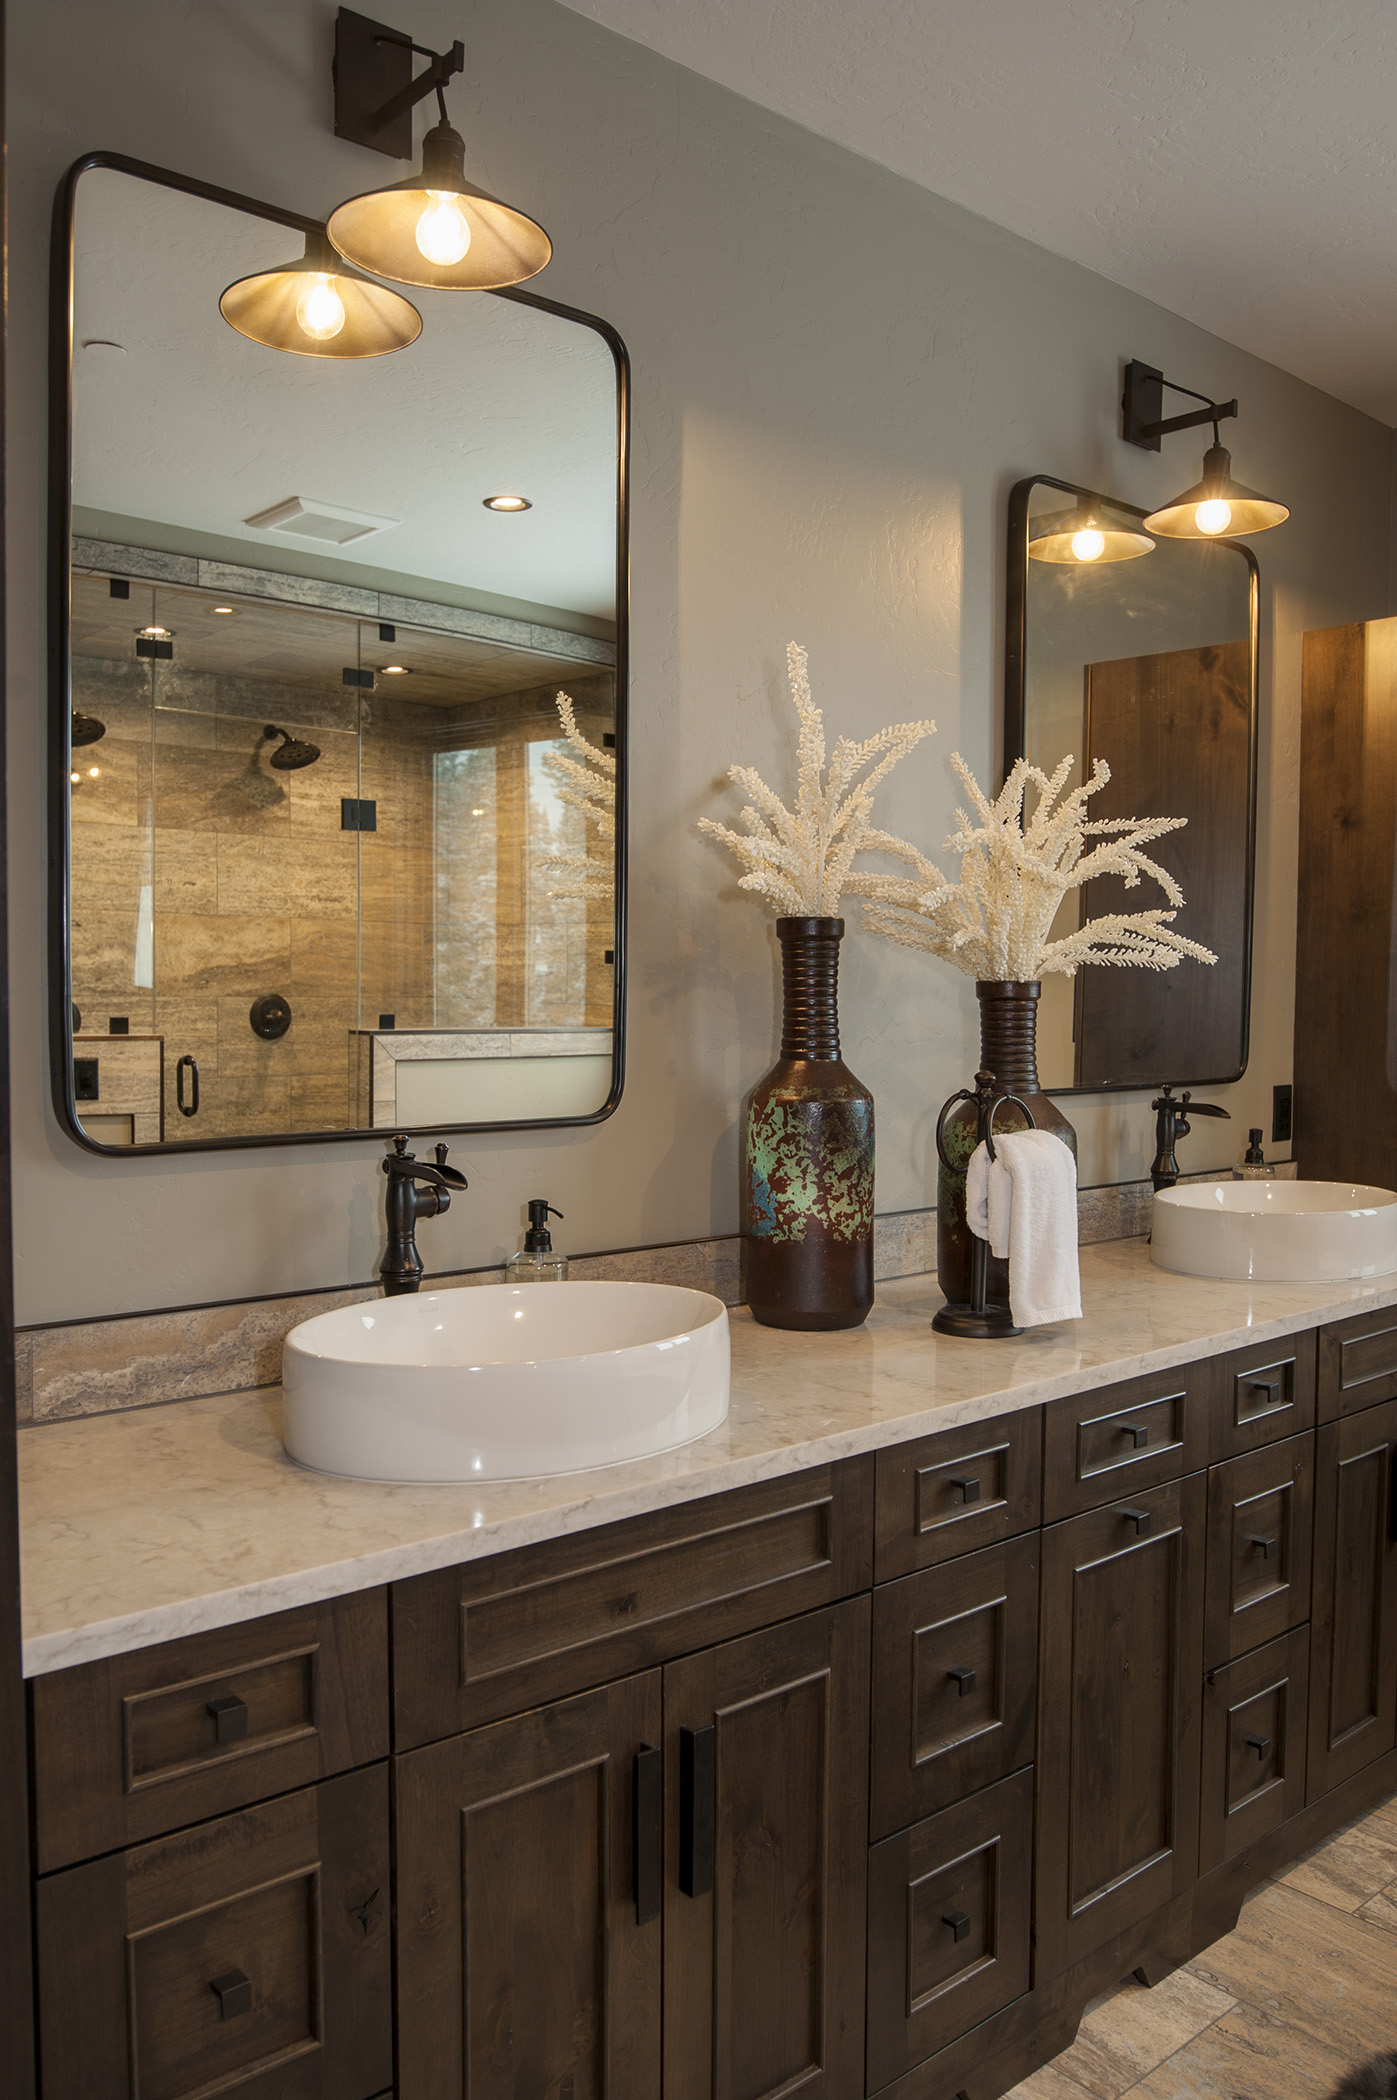 master bathroom2 sm.jpg